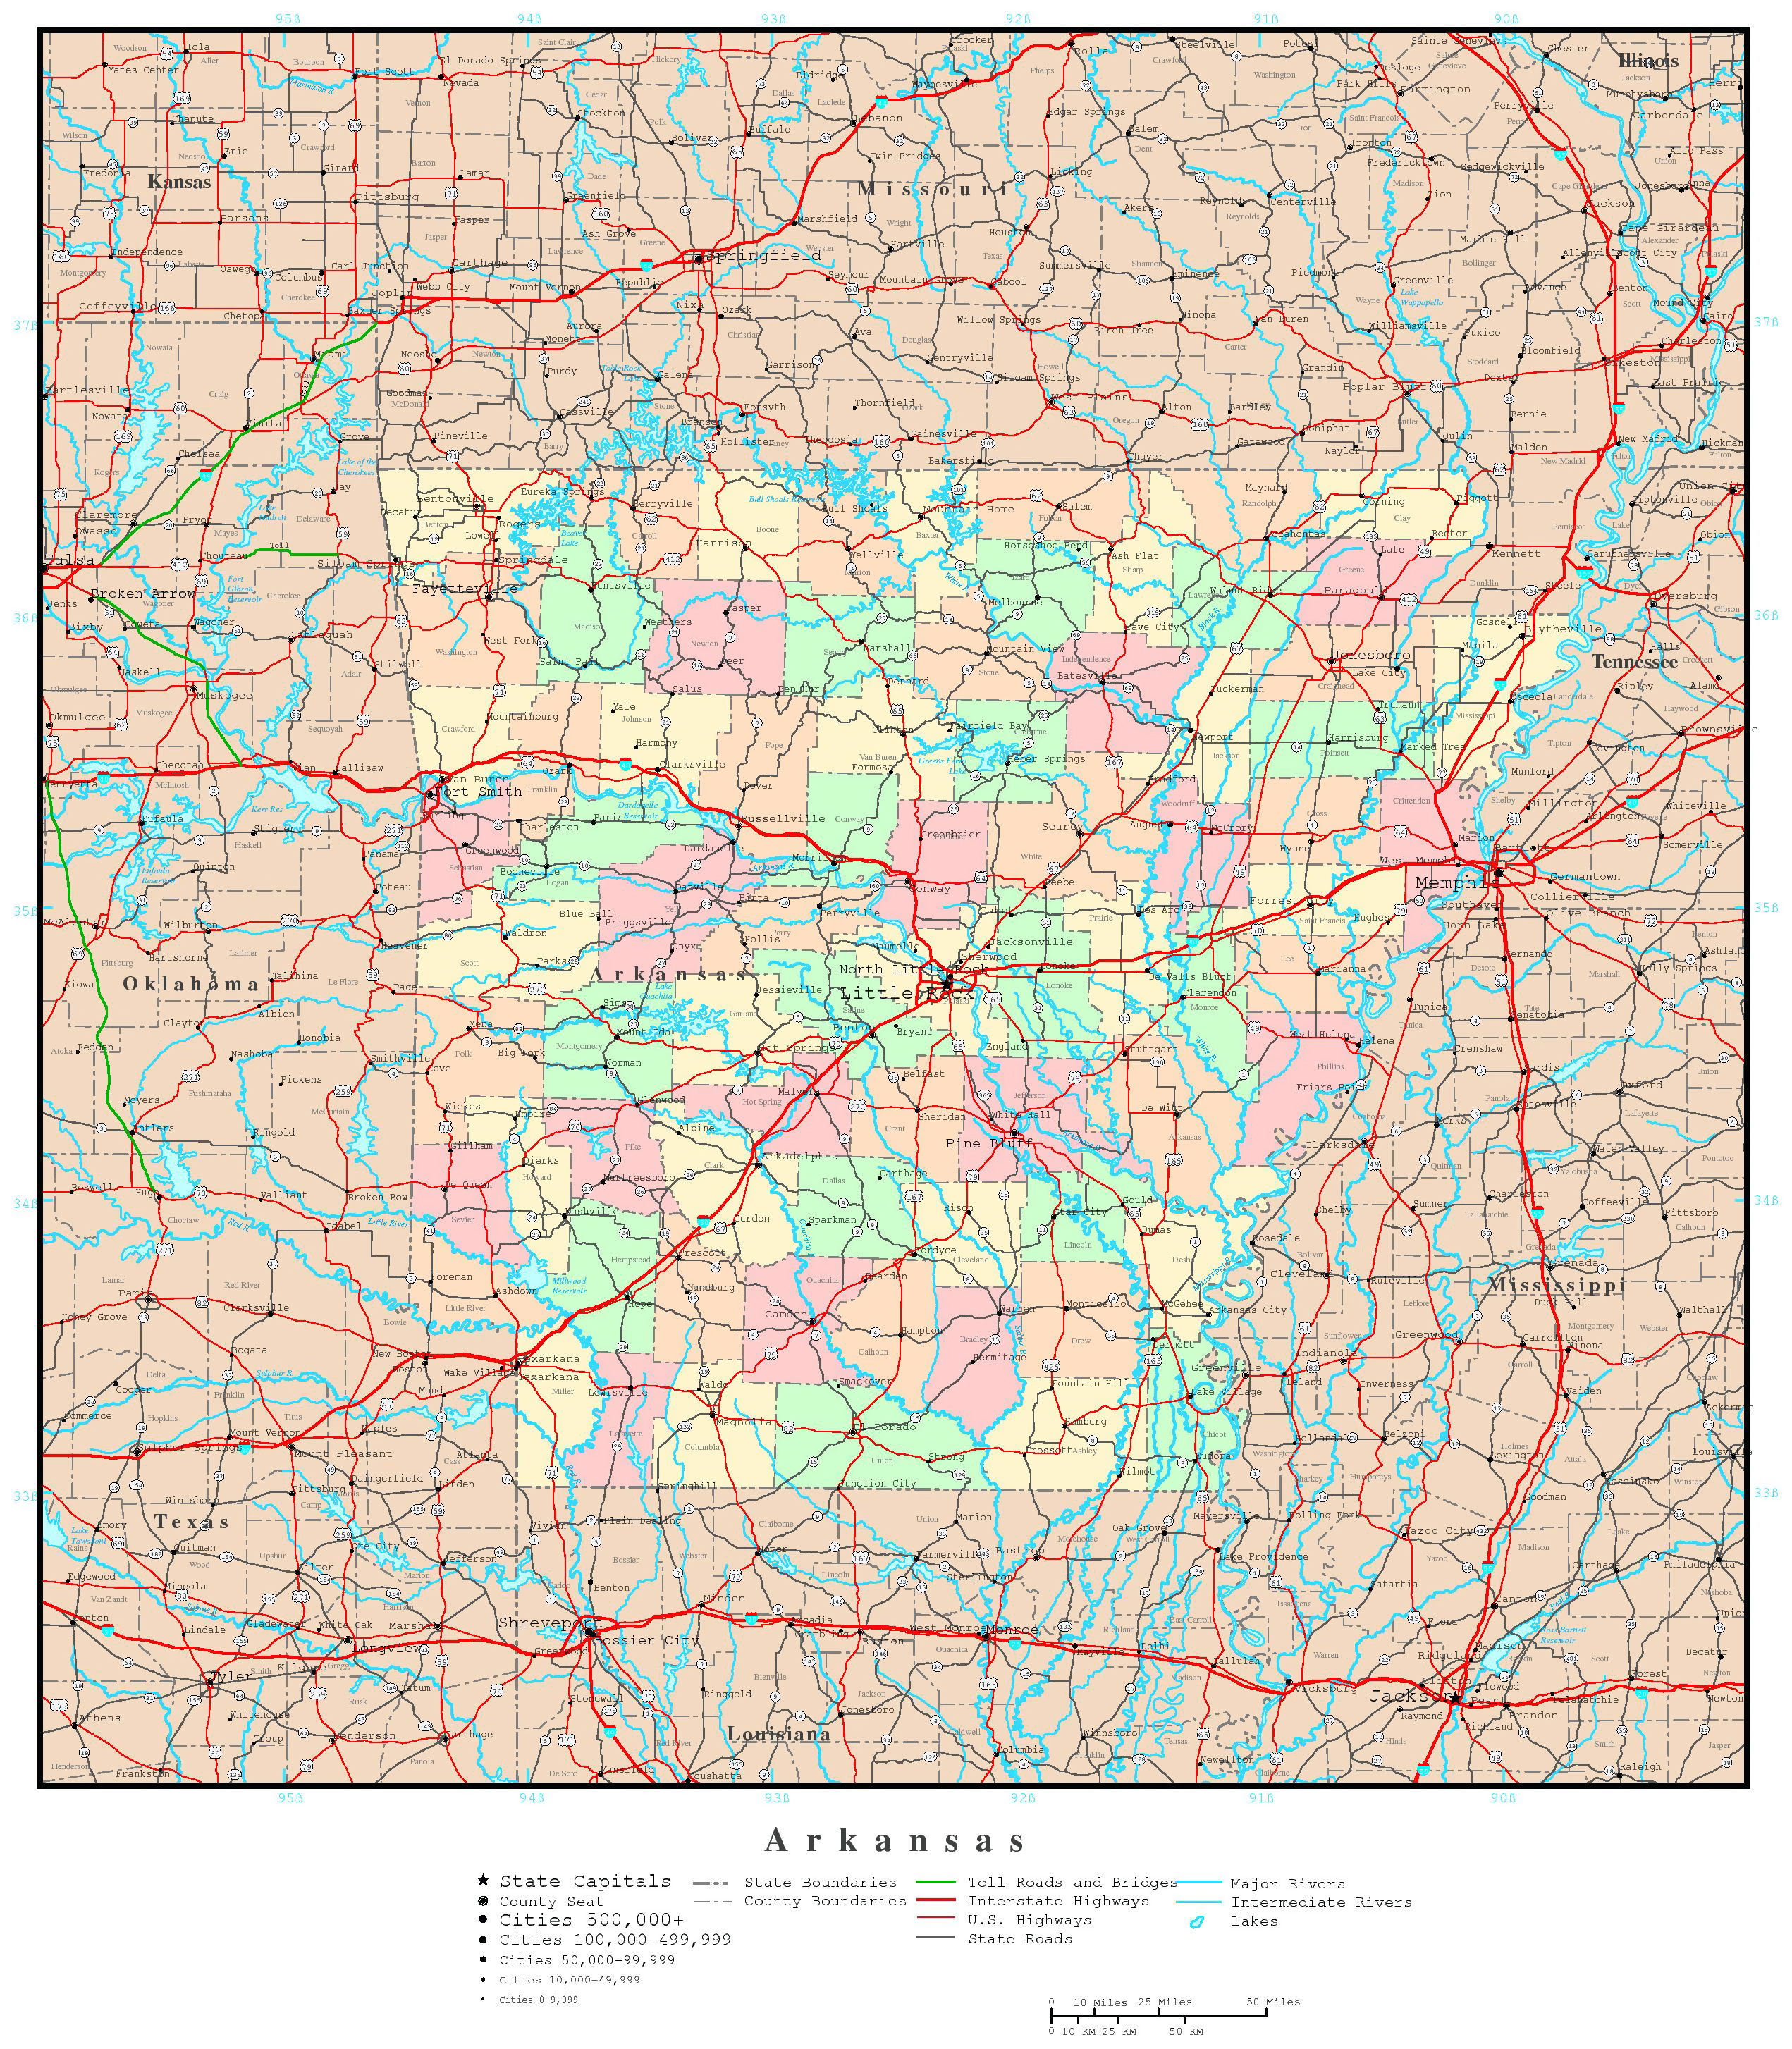 Large Detailed Administrative Map Of Arkansas State With All Roads - State map of arkansas with cities